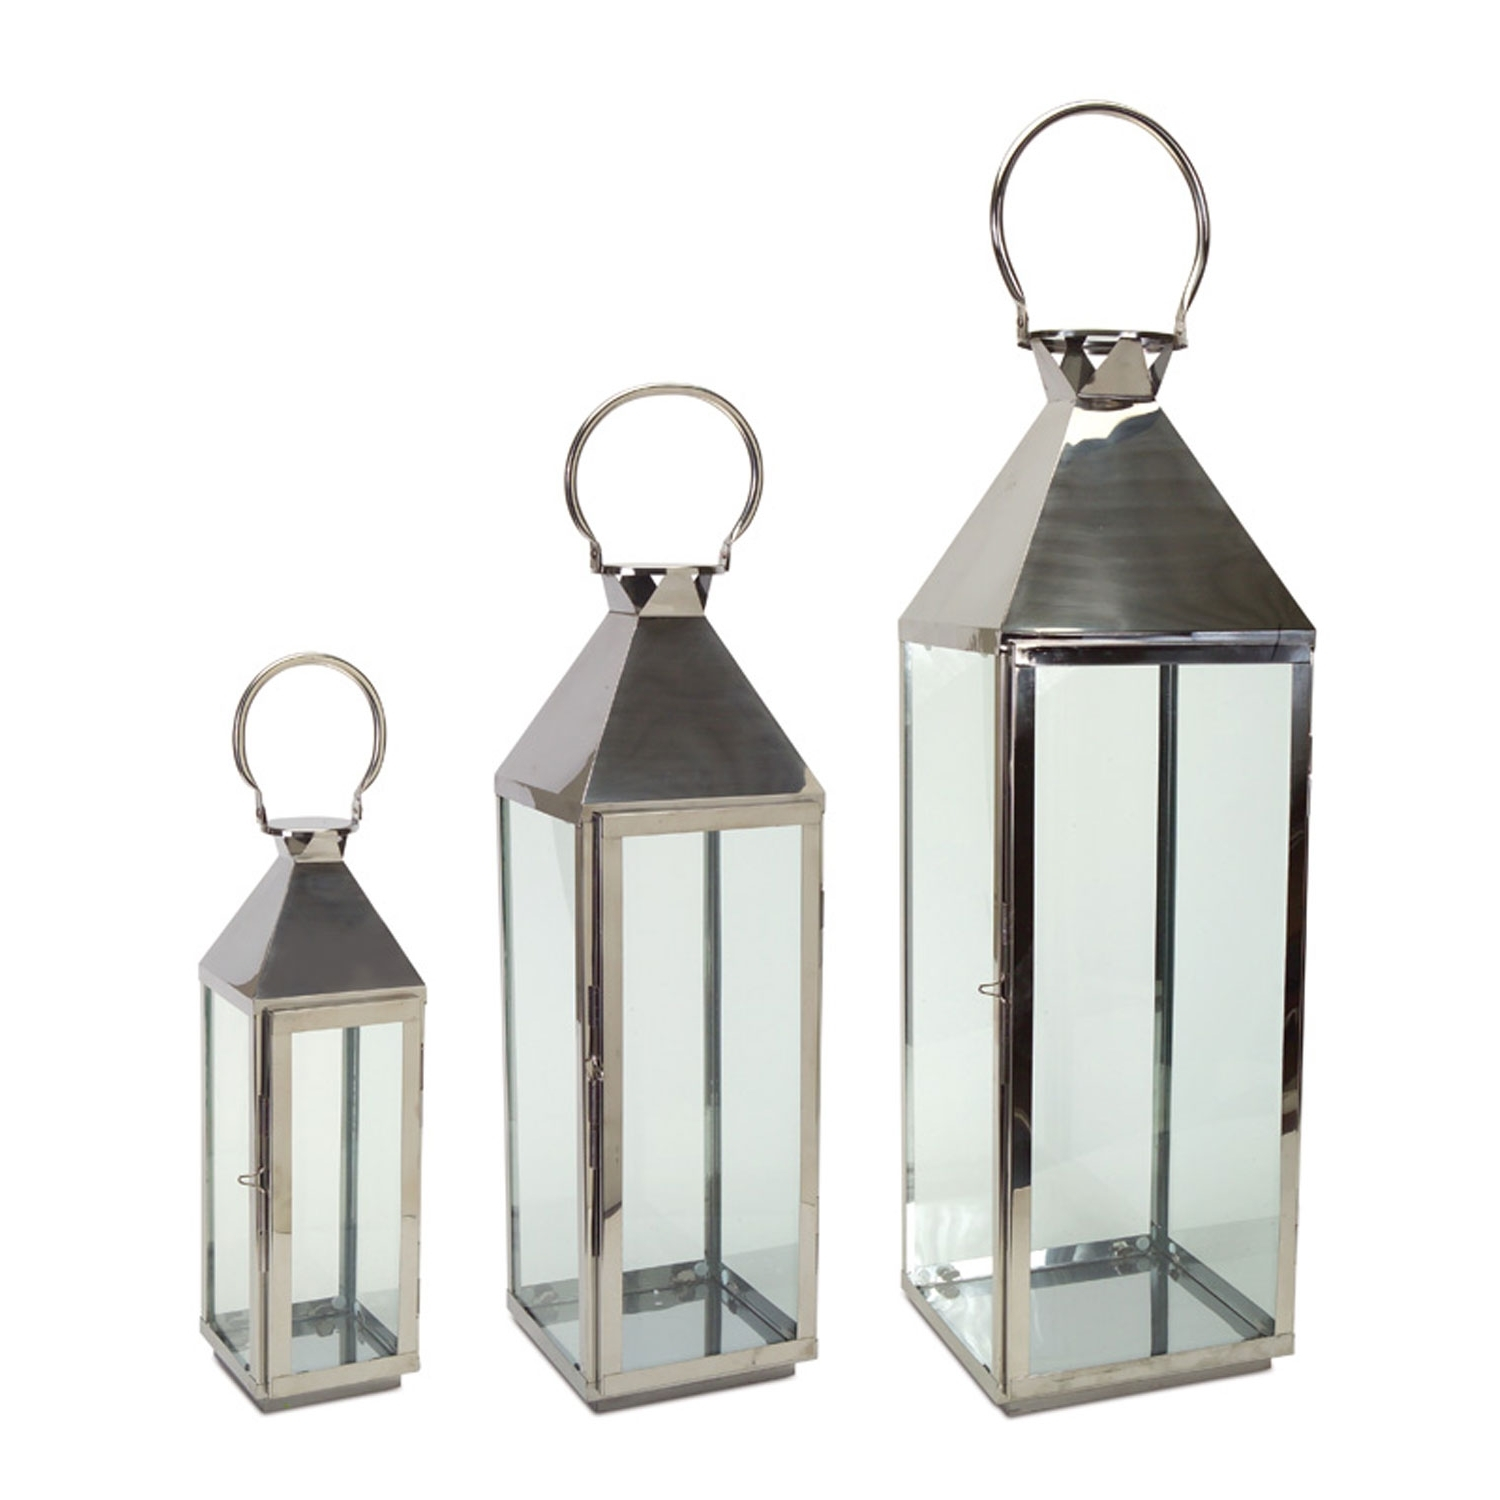 Candle Lanterns, Outdoor Hanging Lanterns, Decorative On Sale In Well Known Outdoor Hanging Lanterns For Candles (View 15 of 20)